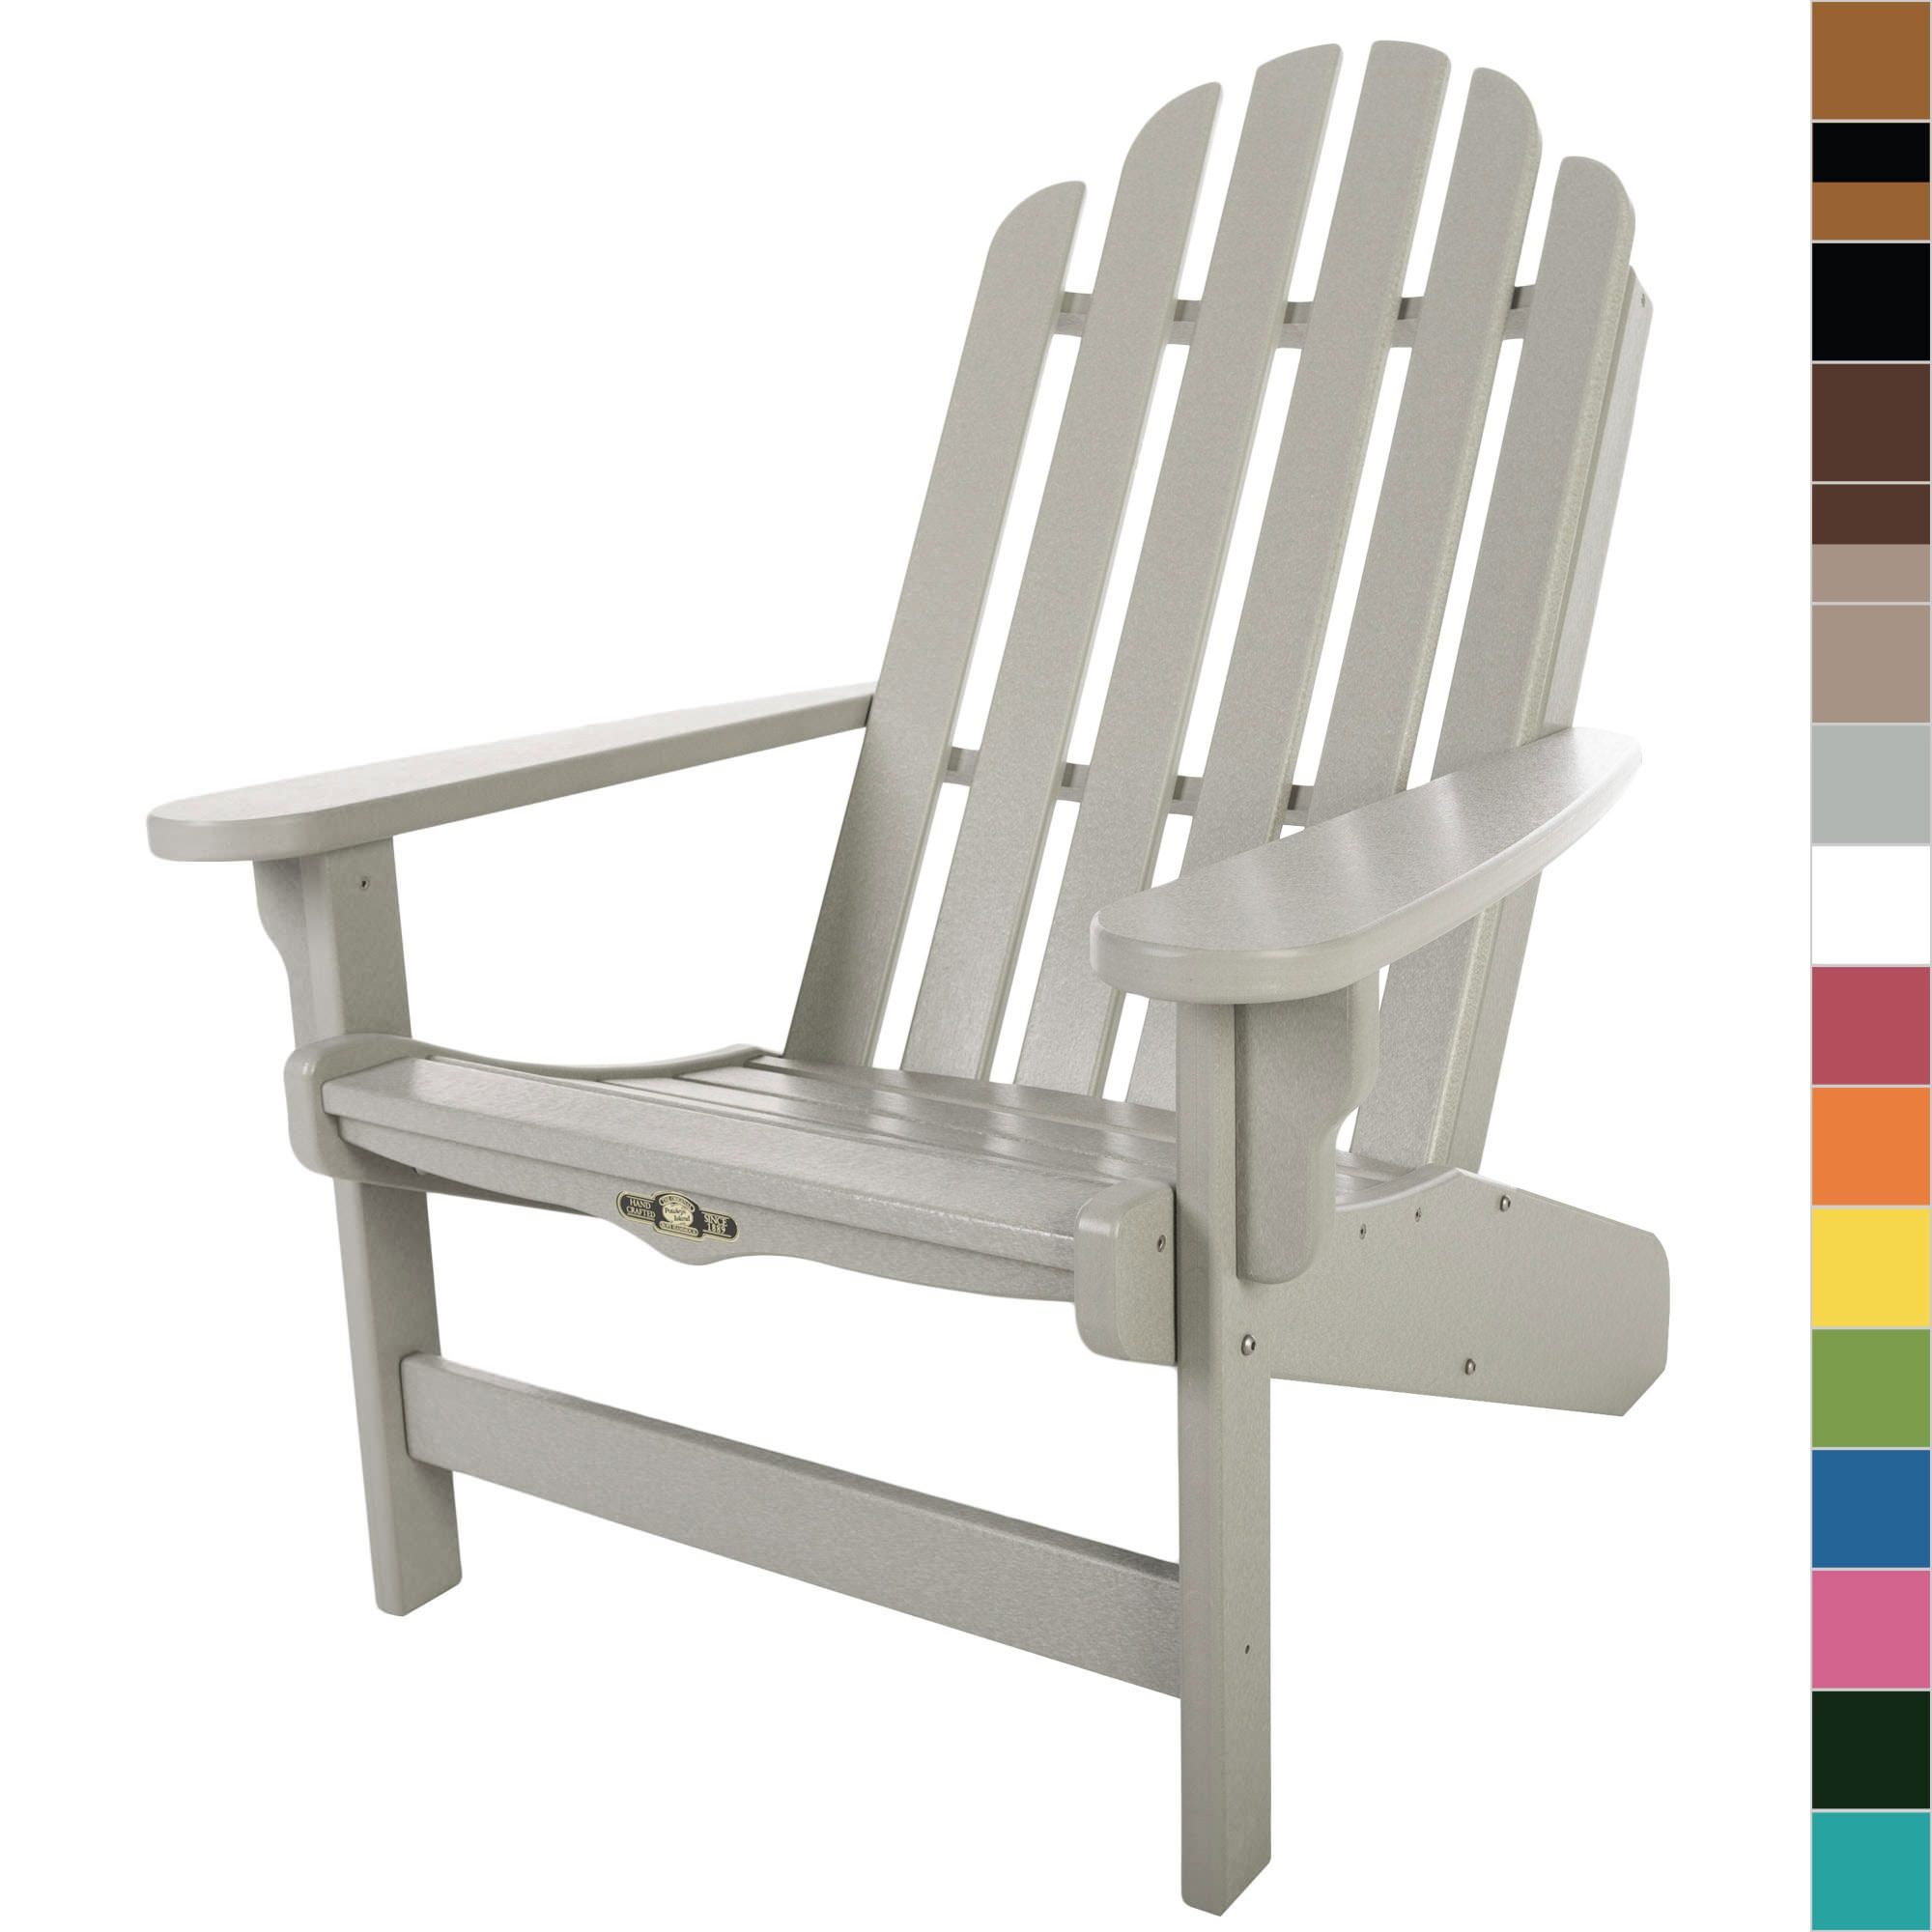 Island Chair Shop Durawood Essentials Adirondack Chairs On Sale